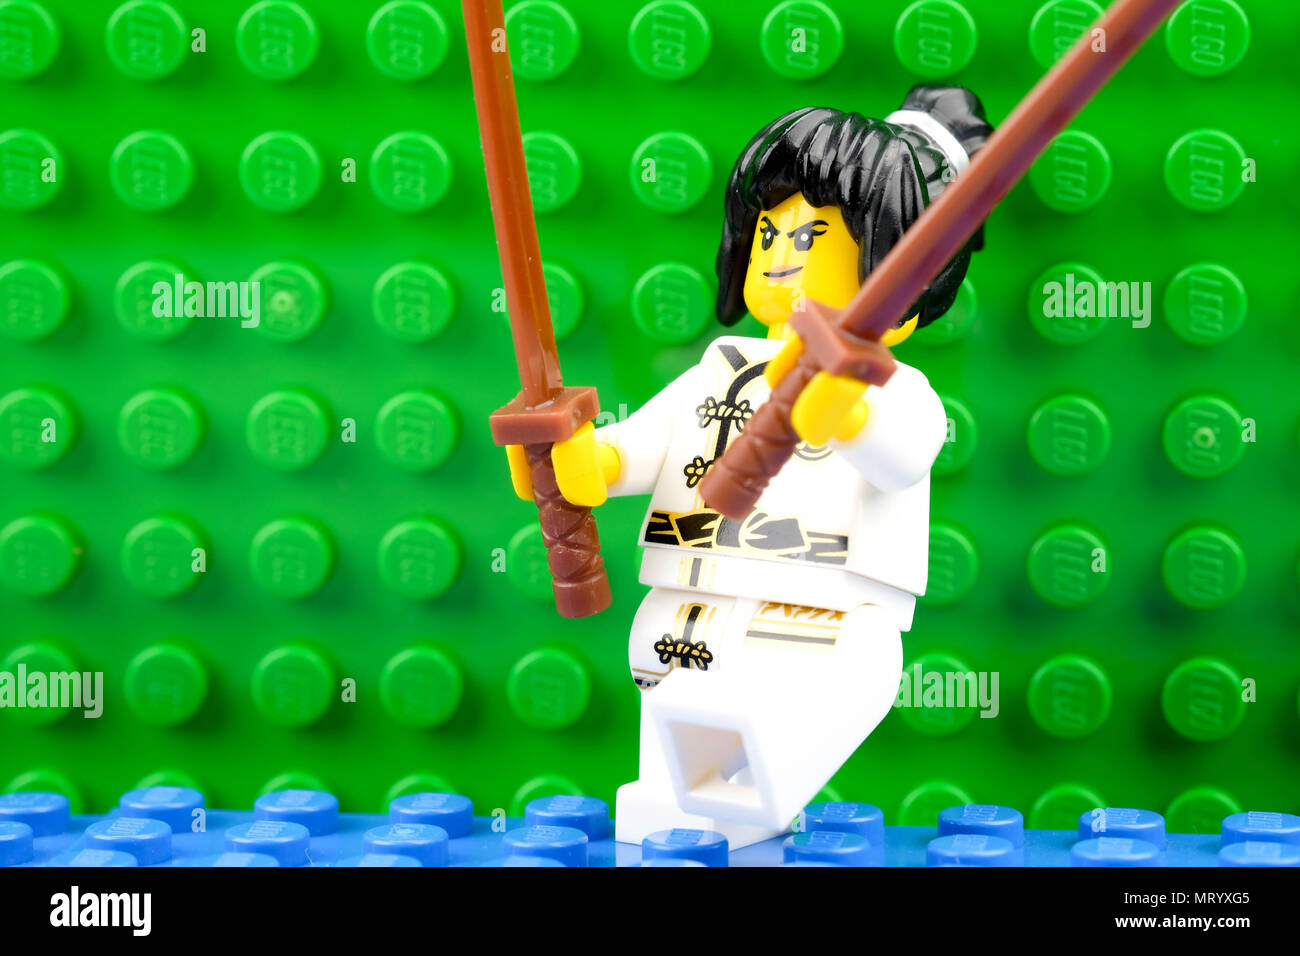 chiang mai, THAILAND - MAY 27, 2018: Lego mini figure, a privately held company based in Billund, Denmark. - Stock Image